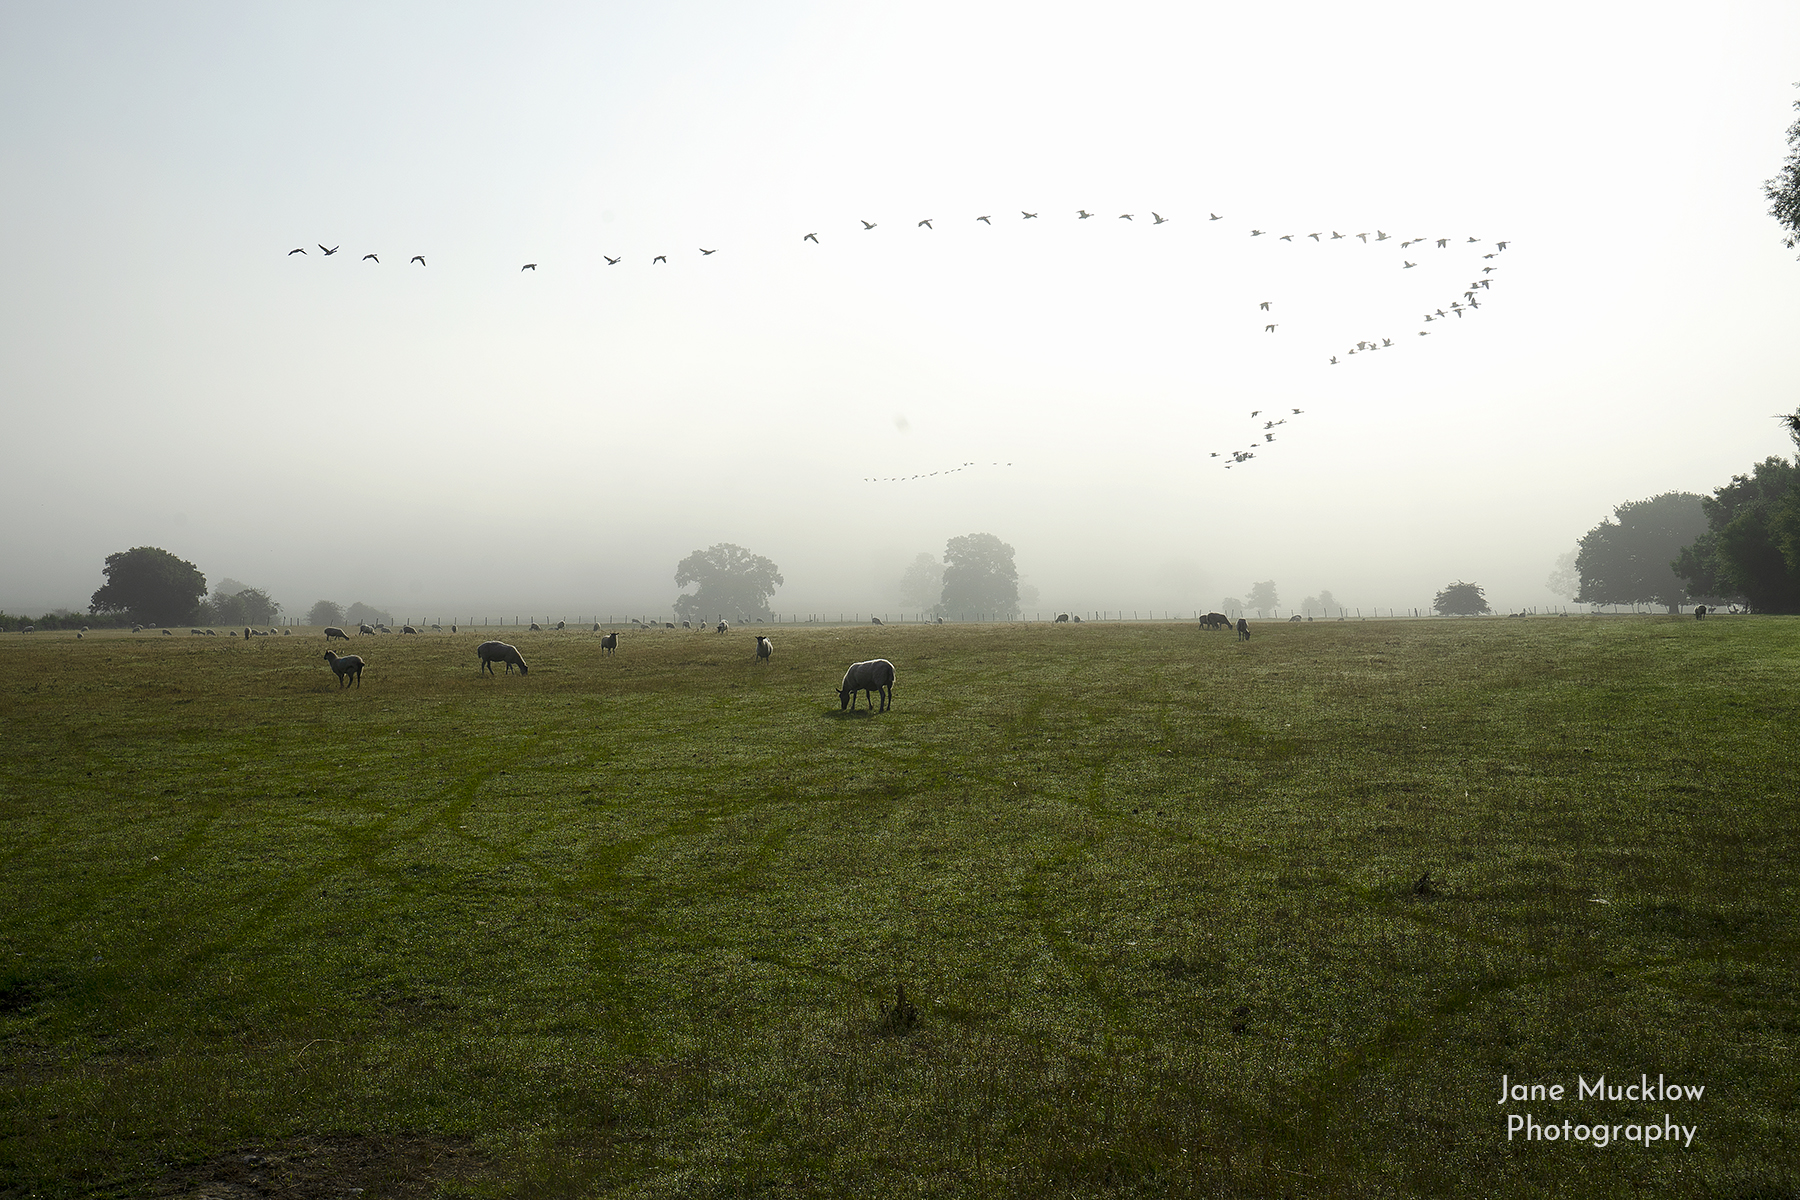 Photograph by Jane Mucklow of geese flying over Otford sheep fields on a misty morning